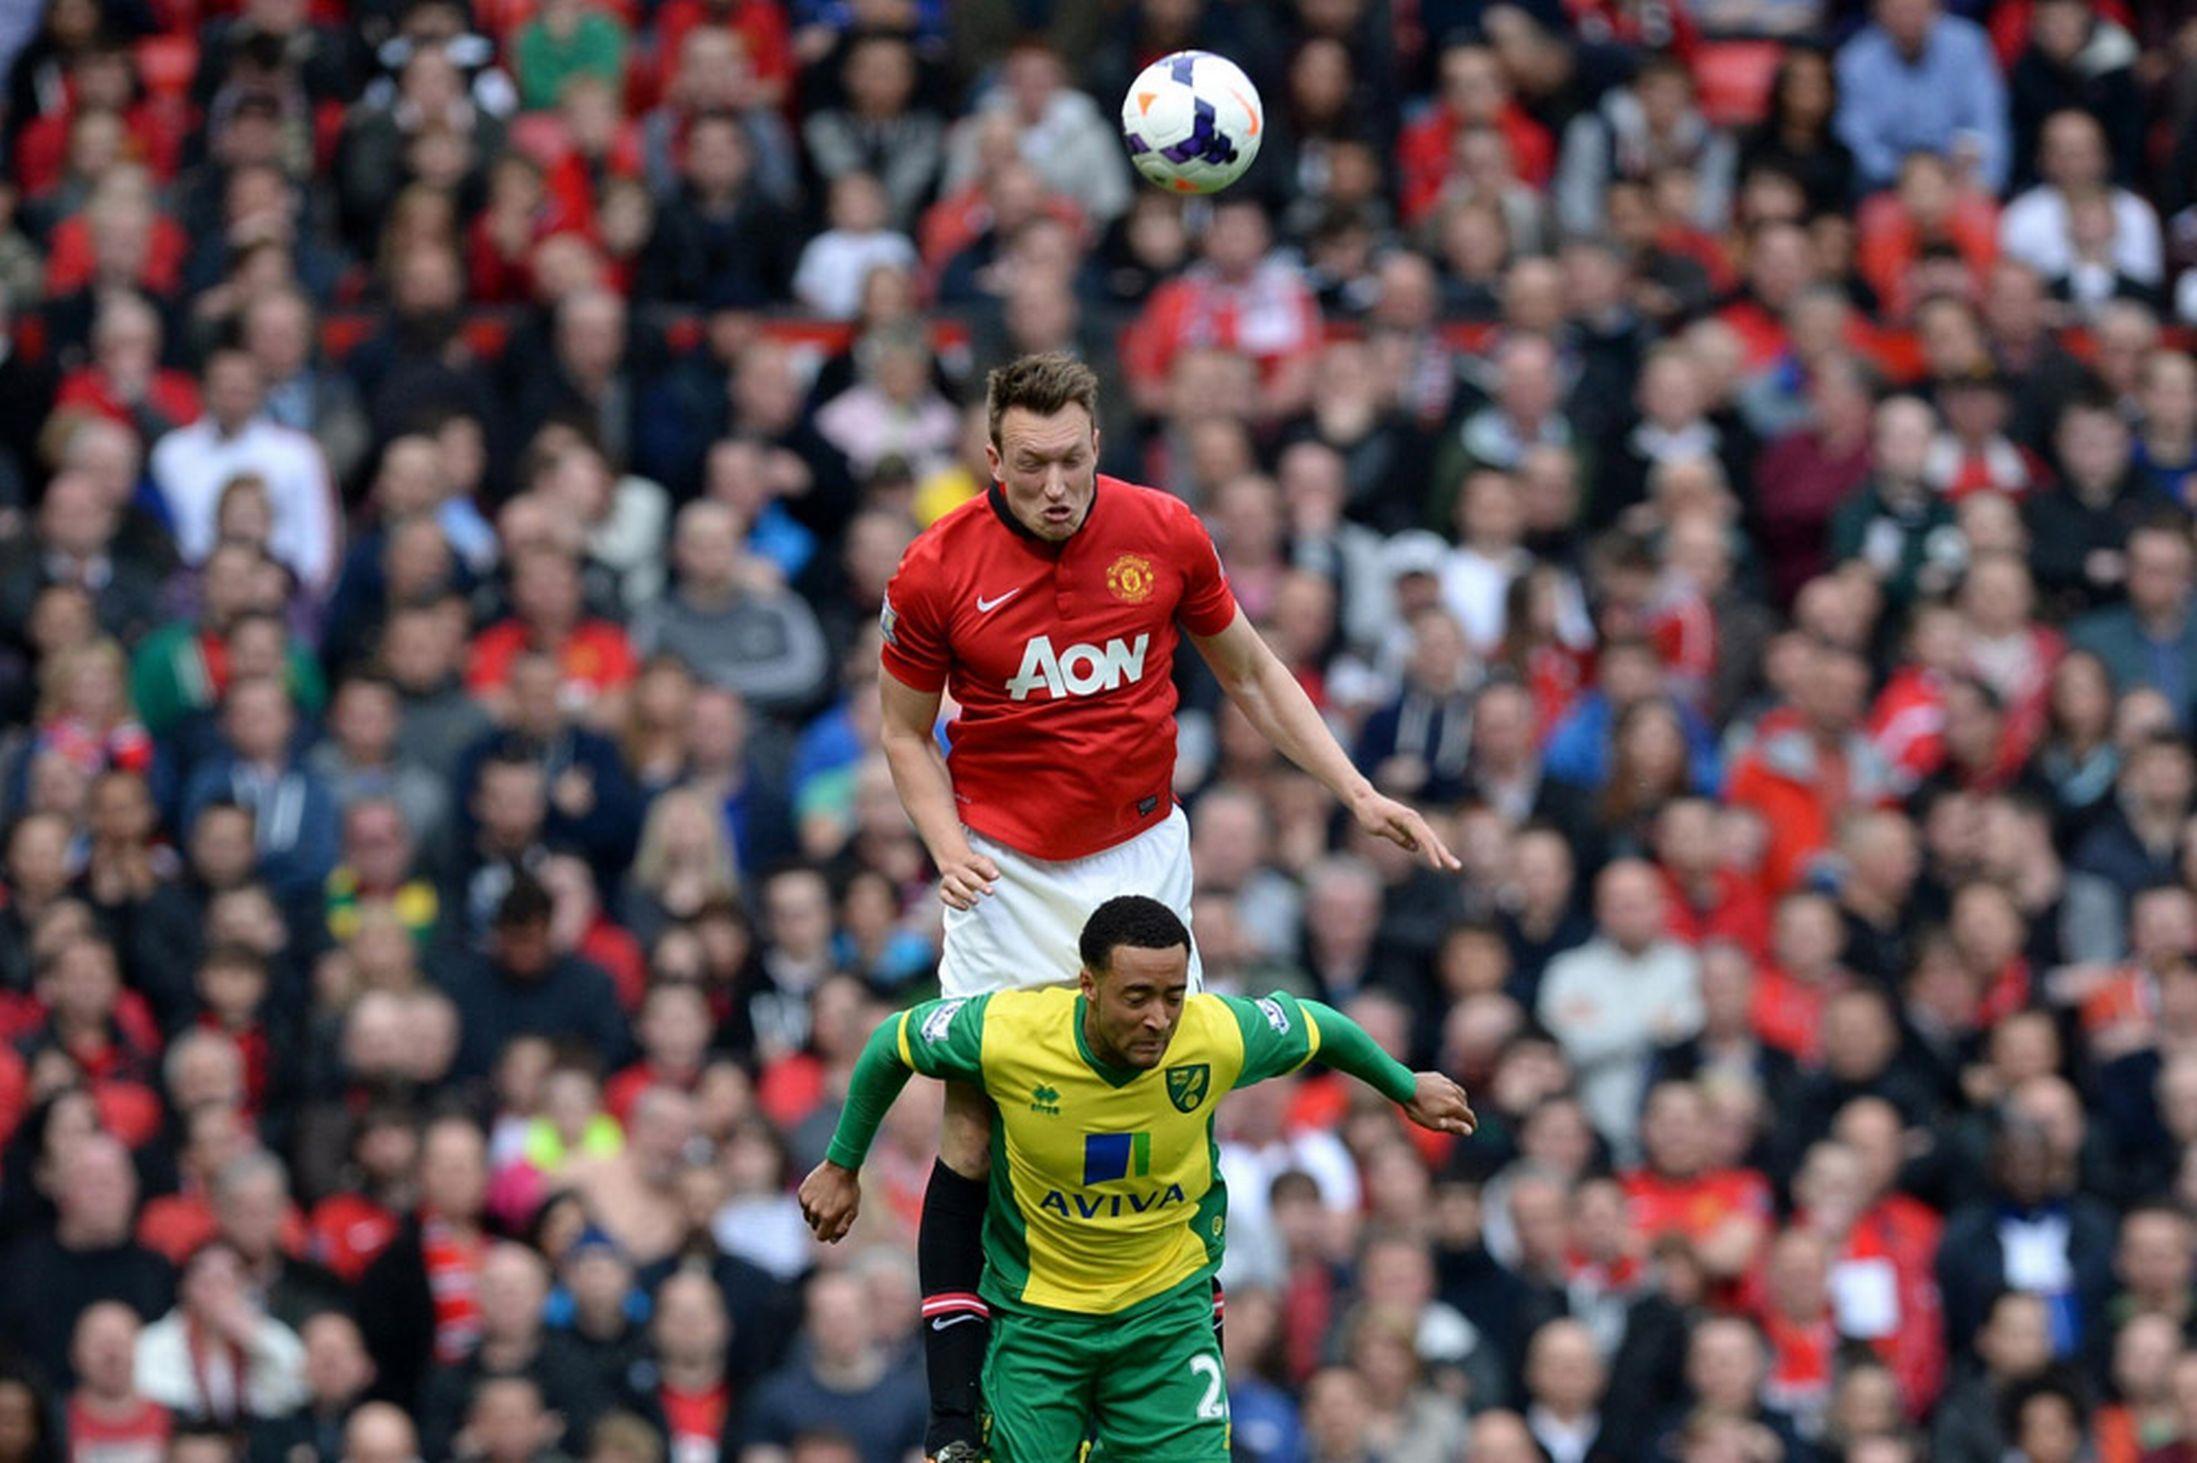 Man United 4 0 Norwich Red Devils Record Easy Win As Ryan Giggs Makes Managerial Bow Man United Phil Jones Manchester United